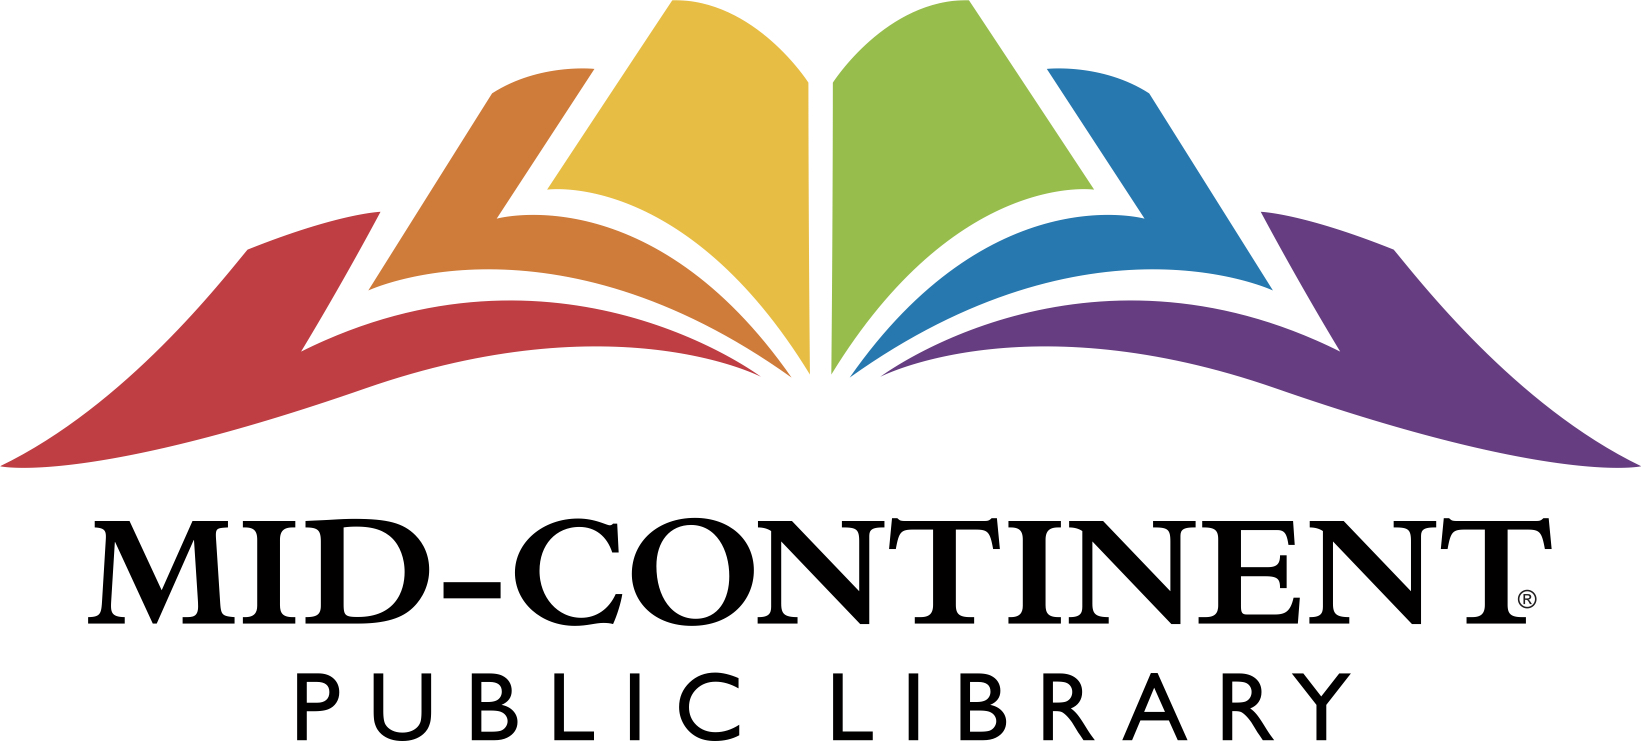 Summer Learning Program | Mid-Continent Public Library